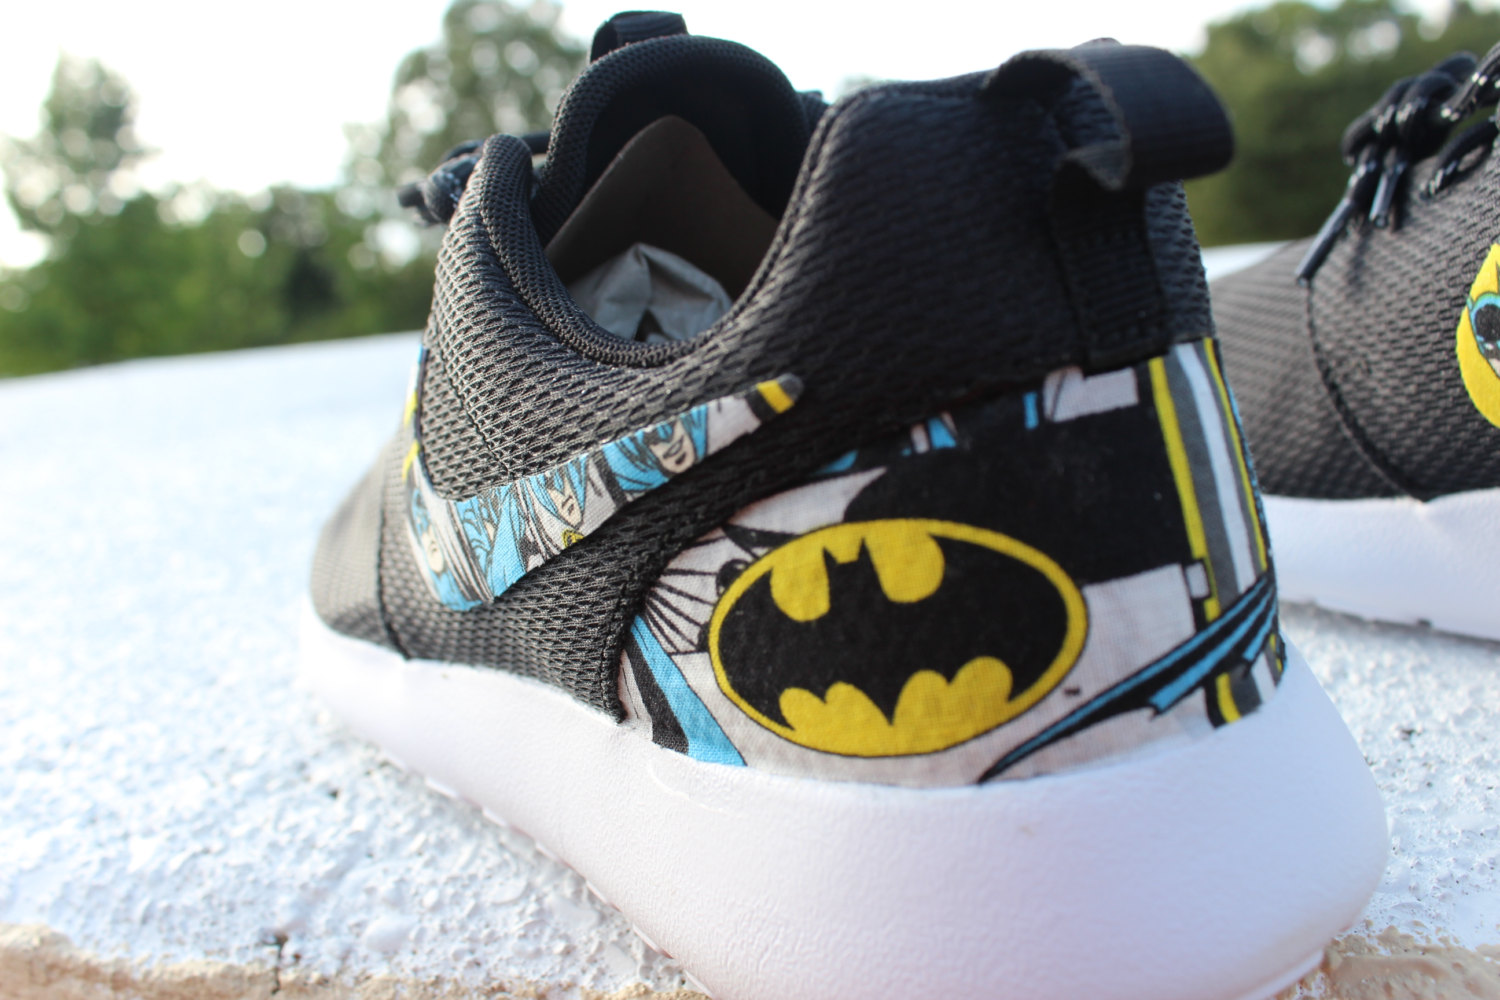 5a7bff9aa0acda The Batman Nike Roshe Shoes are available for  159.99 at GrabbKicks  Etsy  store.